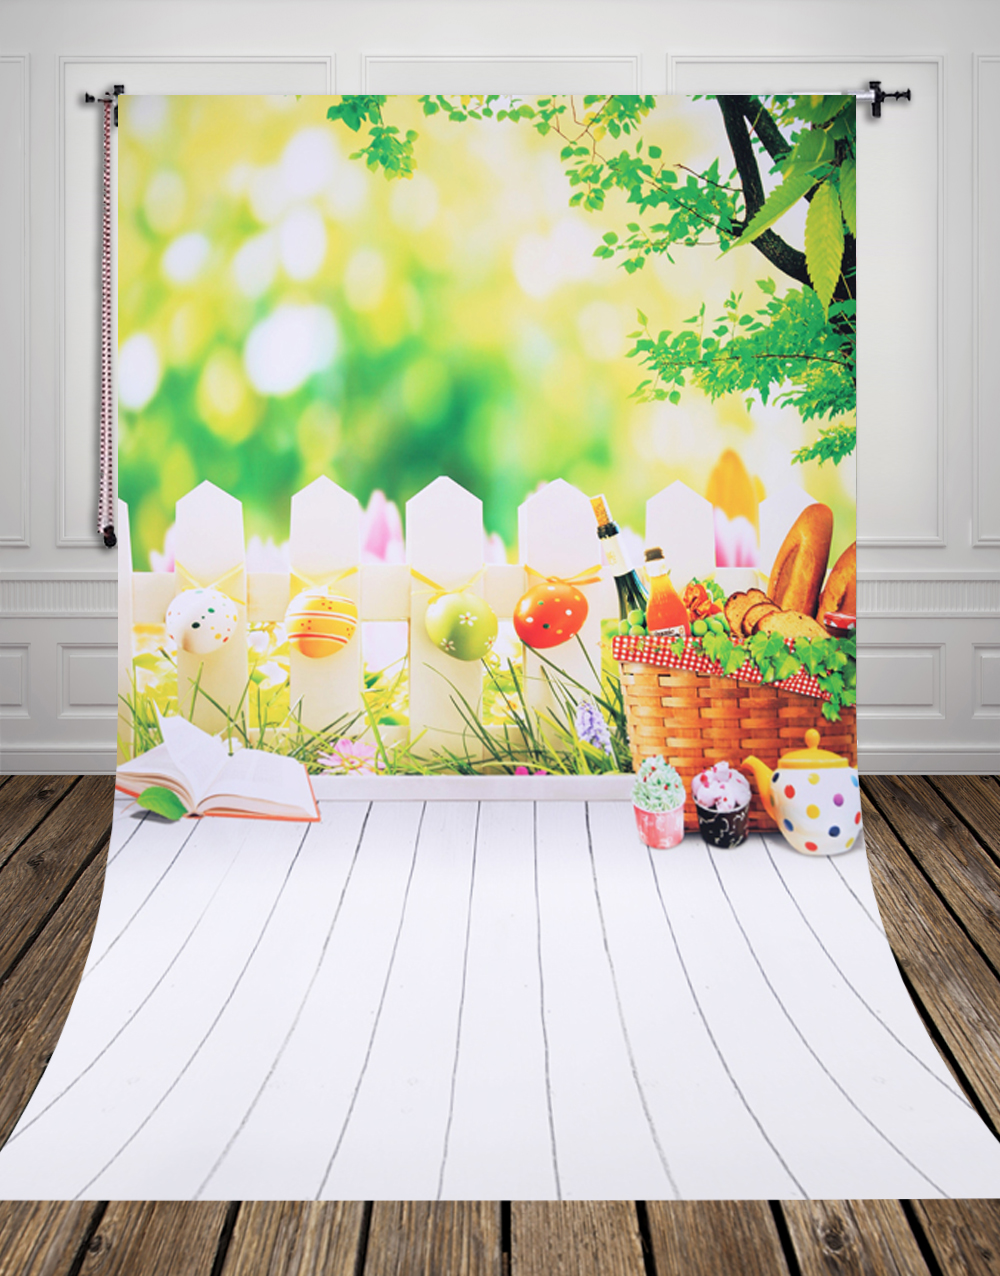 Background image 9971 - Vertical Hot Sale Art Fabric Photo Studio Backdrops Pc Painted Newborn Baby Easter Eggs Backgrounds D